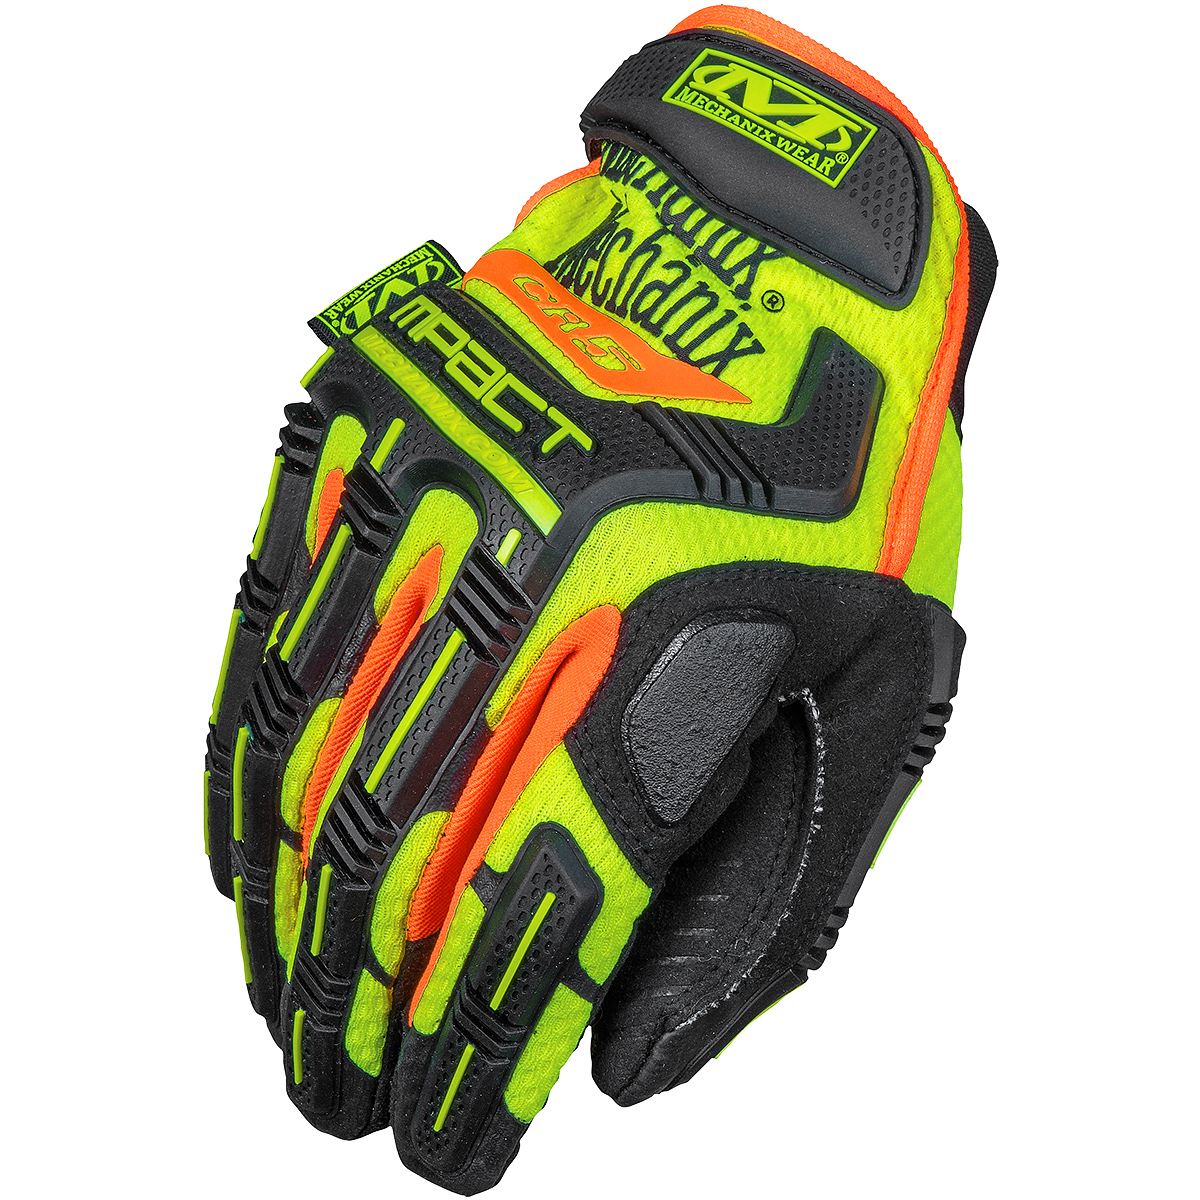 Mens yellow gloves - Mechanix Wear Cr5 M Pact Impact Protection Gloves